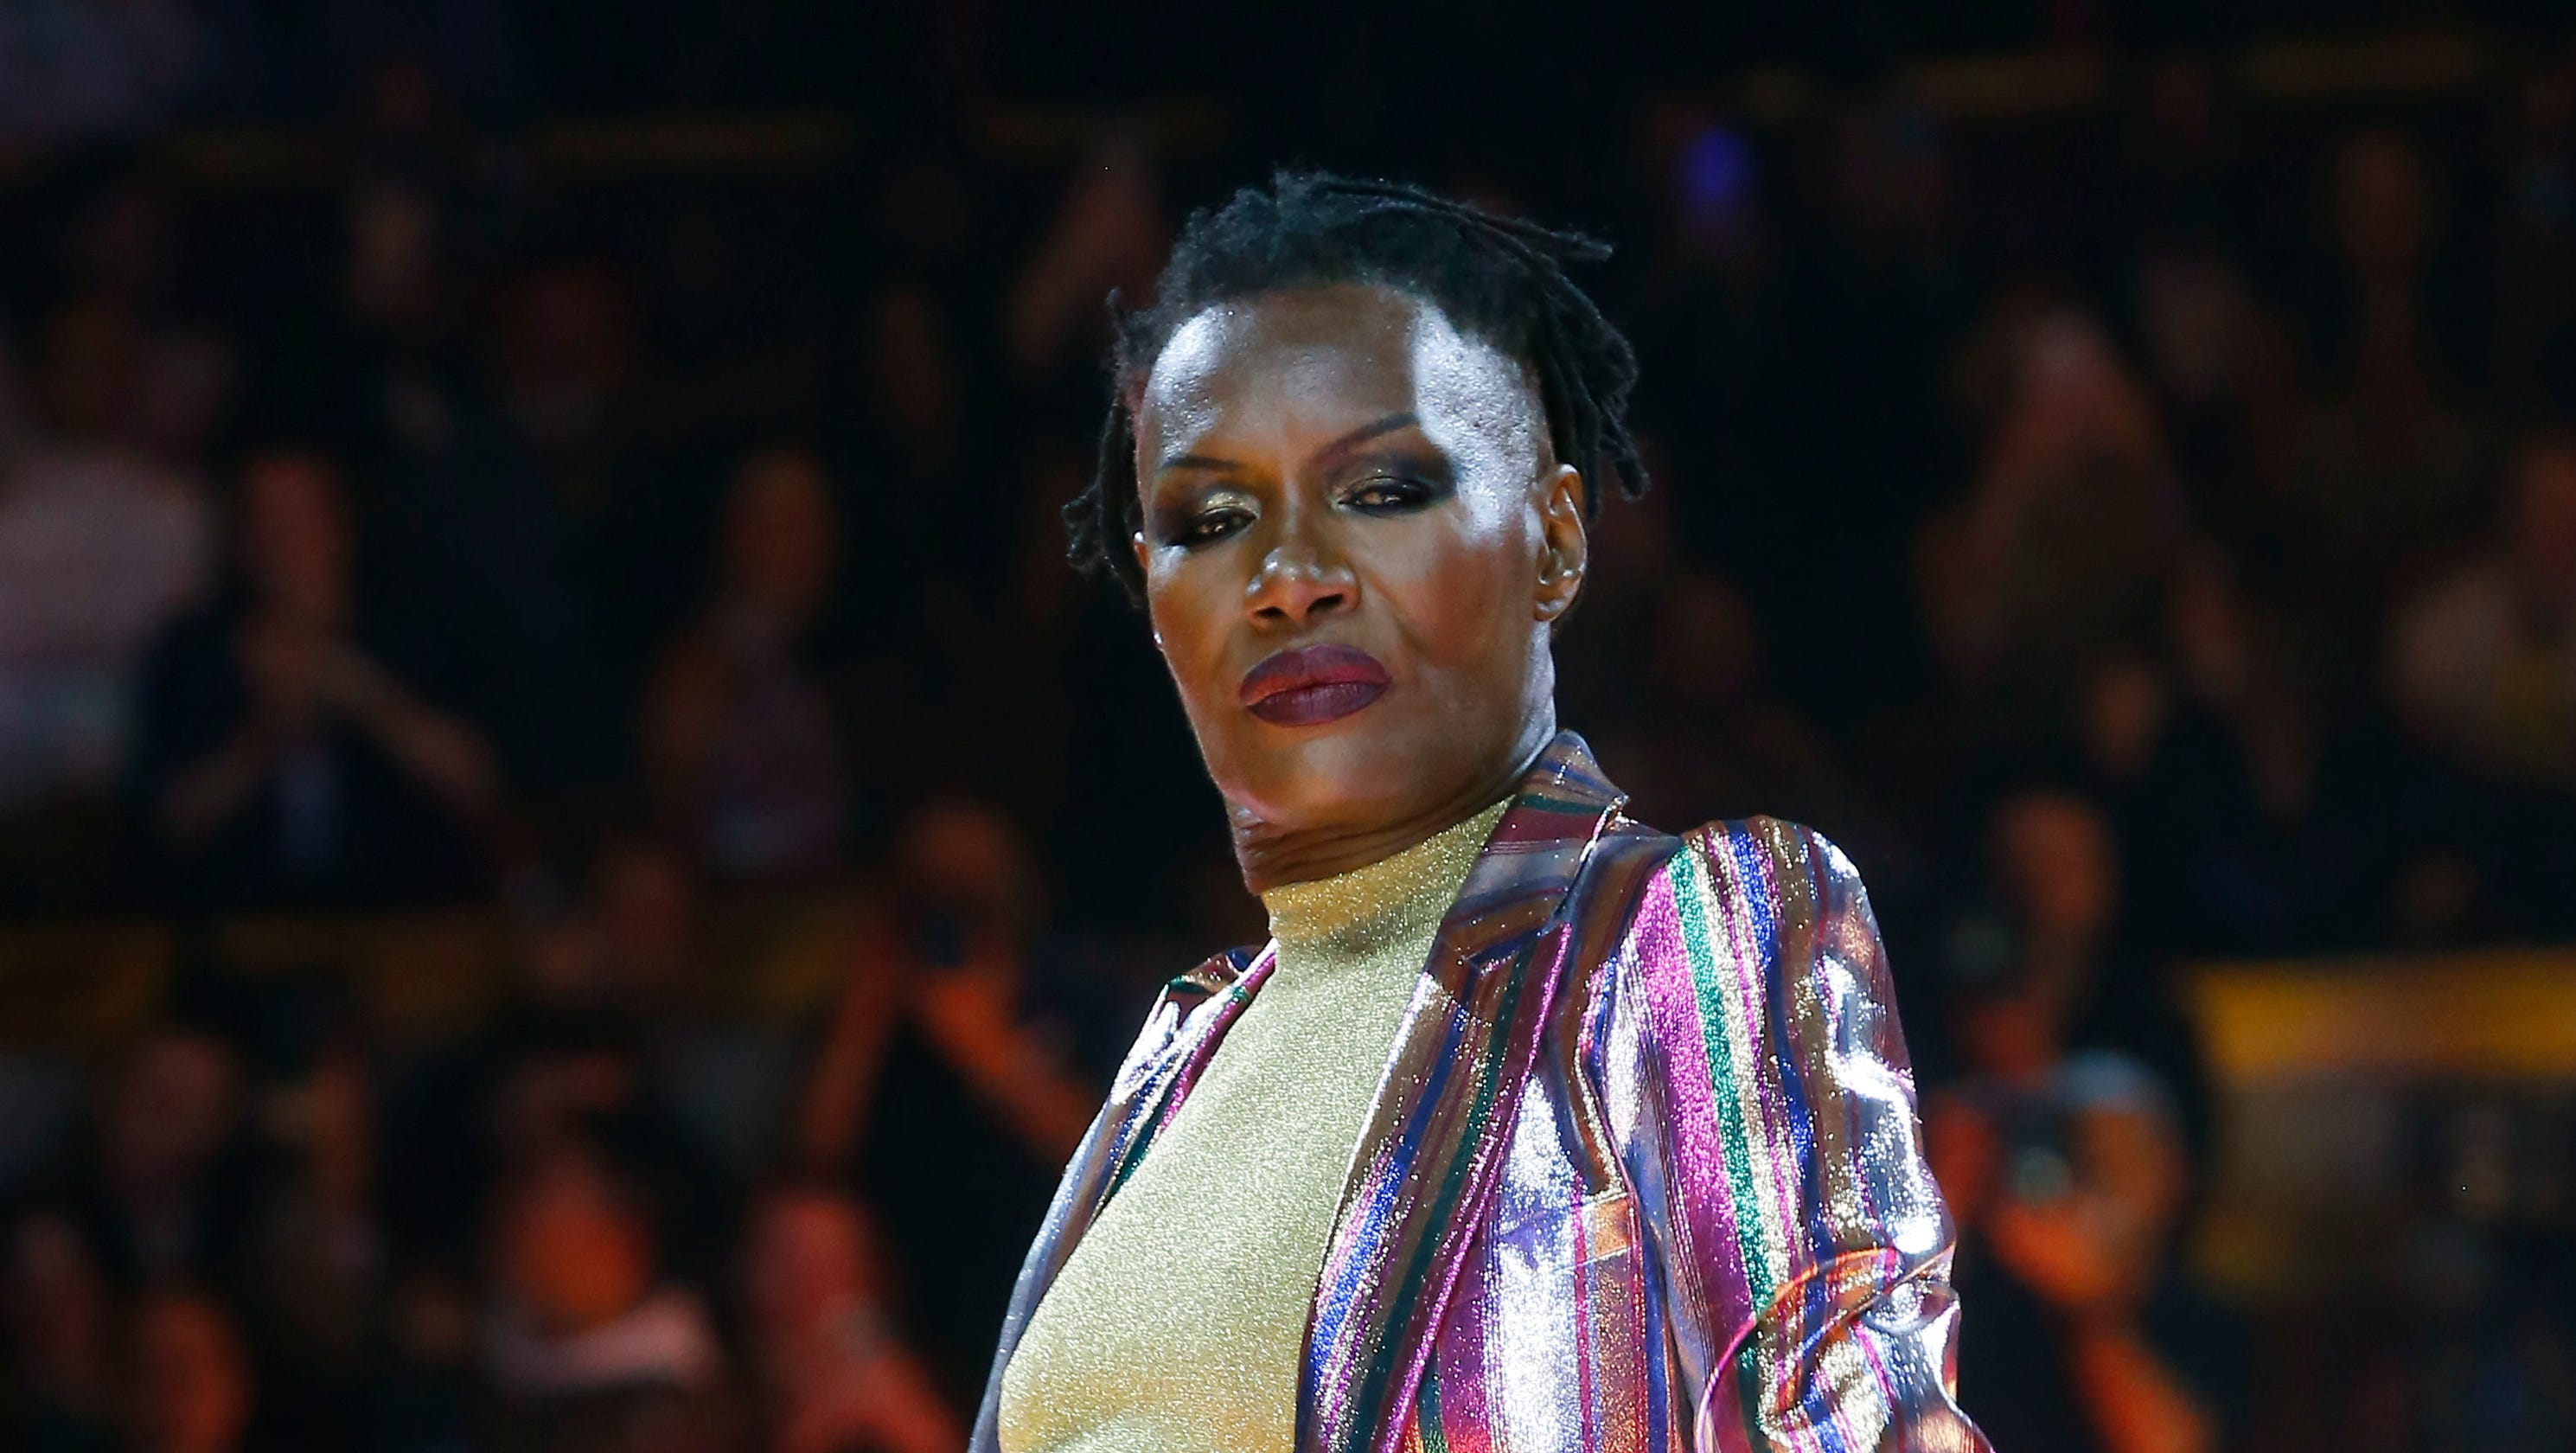 Grace Jones Nationality, Ethnicity, Religion, and Career